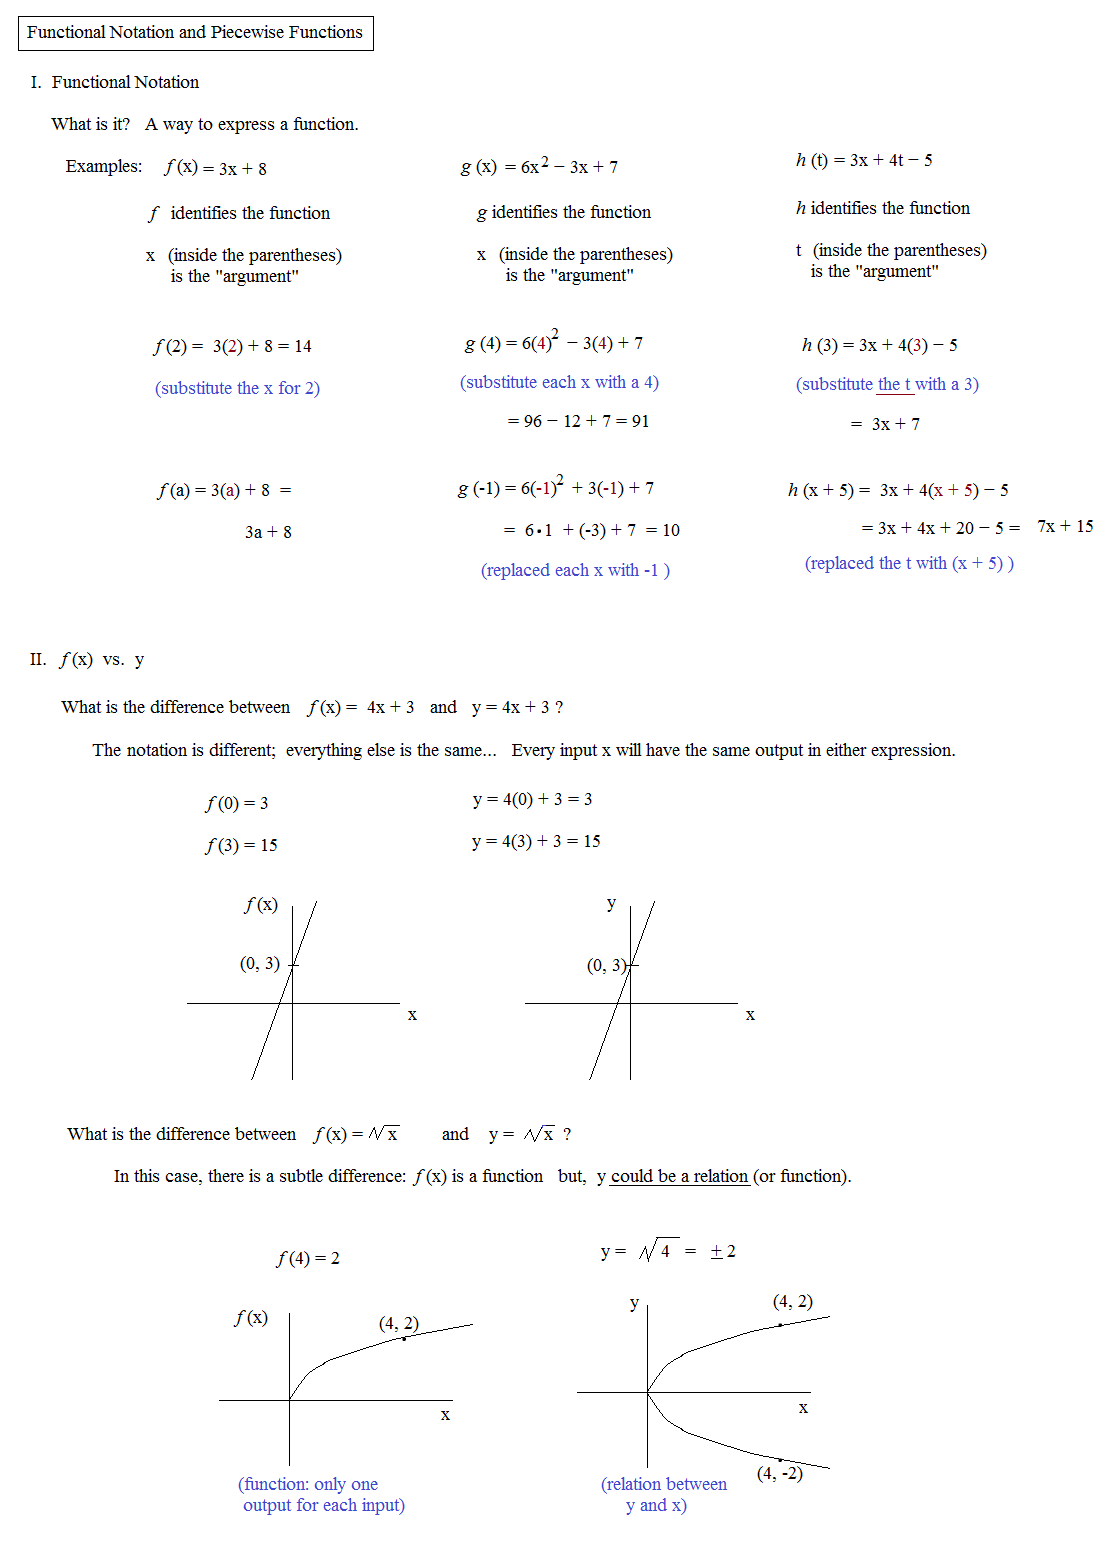 Worksheets Algebra 1 Functions Worksheets algebra 1 function notation worksheet answers free worksheets exponents worksheets